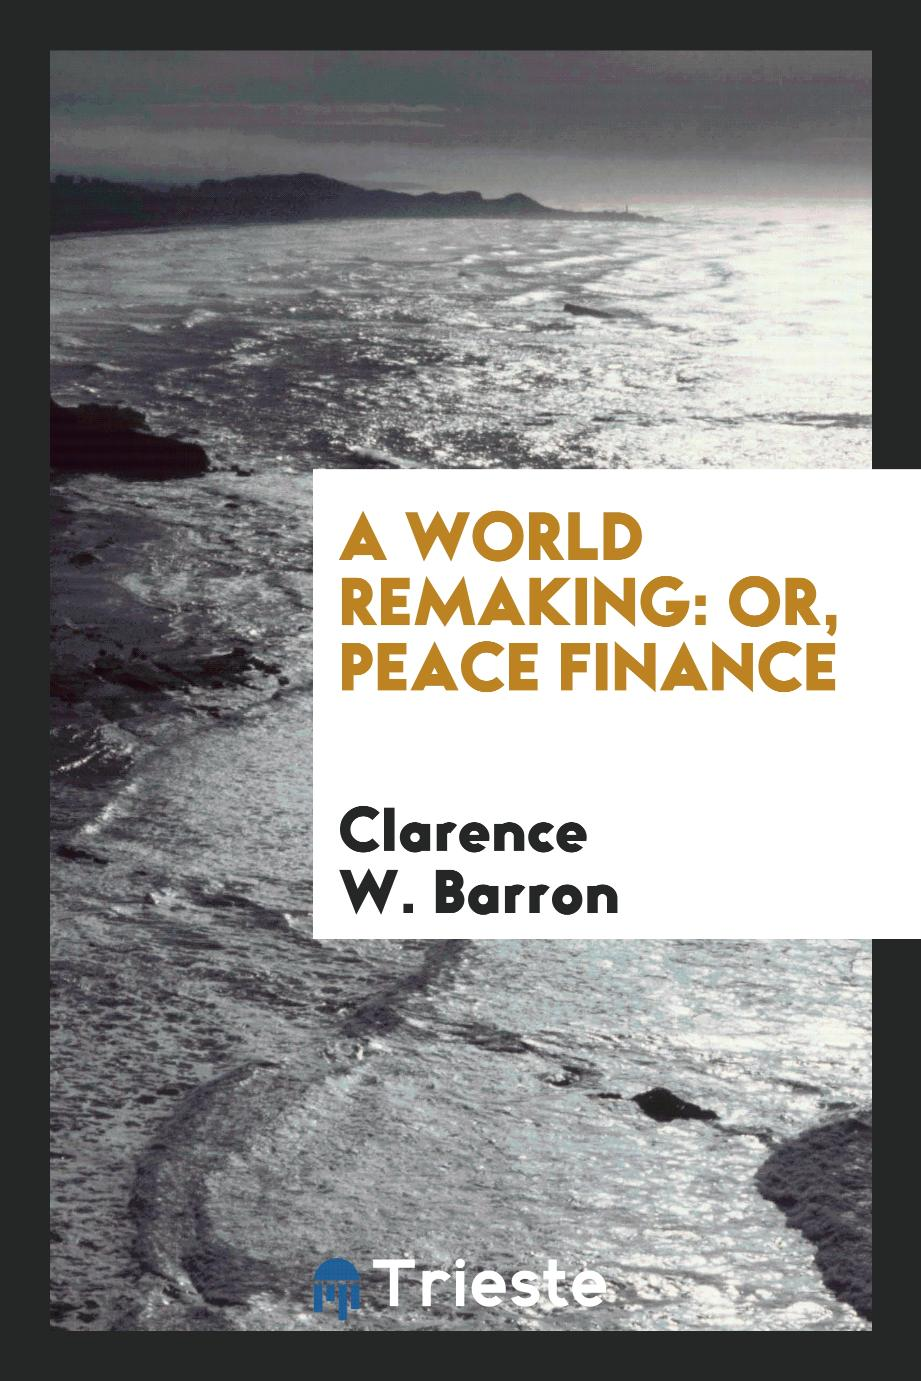 A World Remaking: Or, Peace Finance